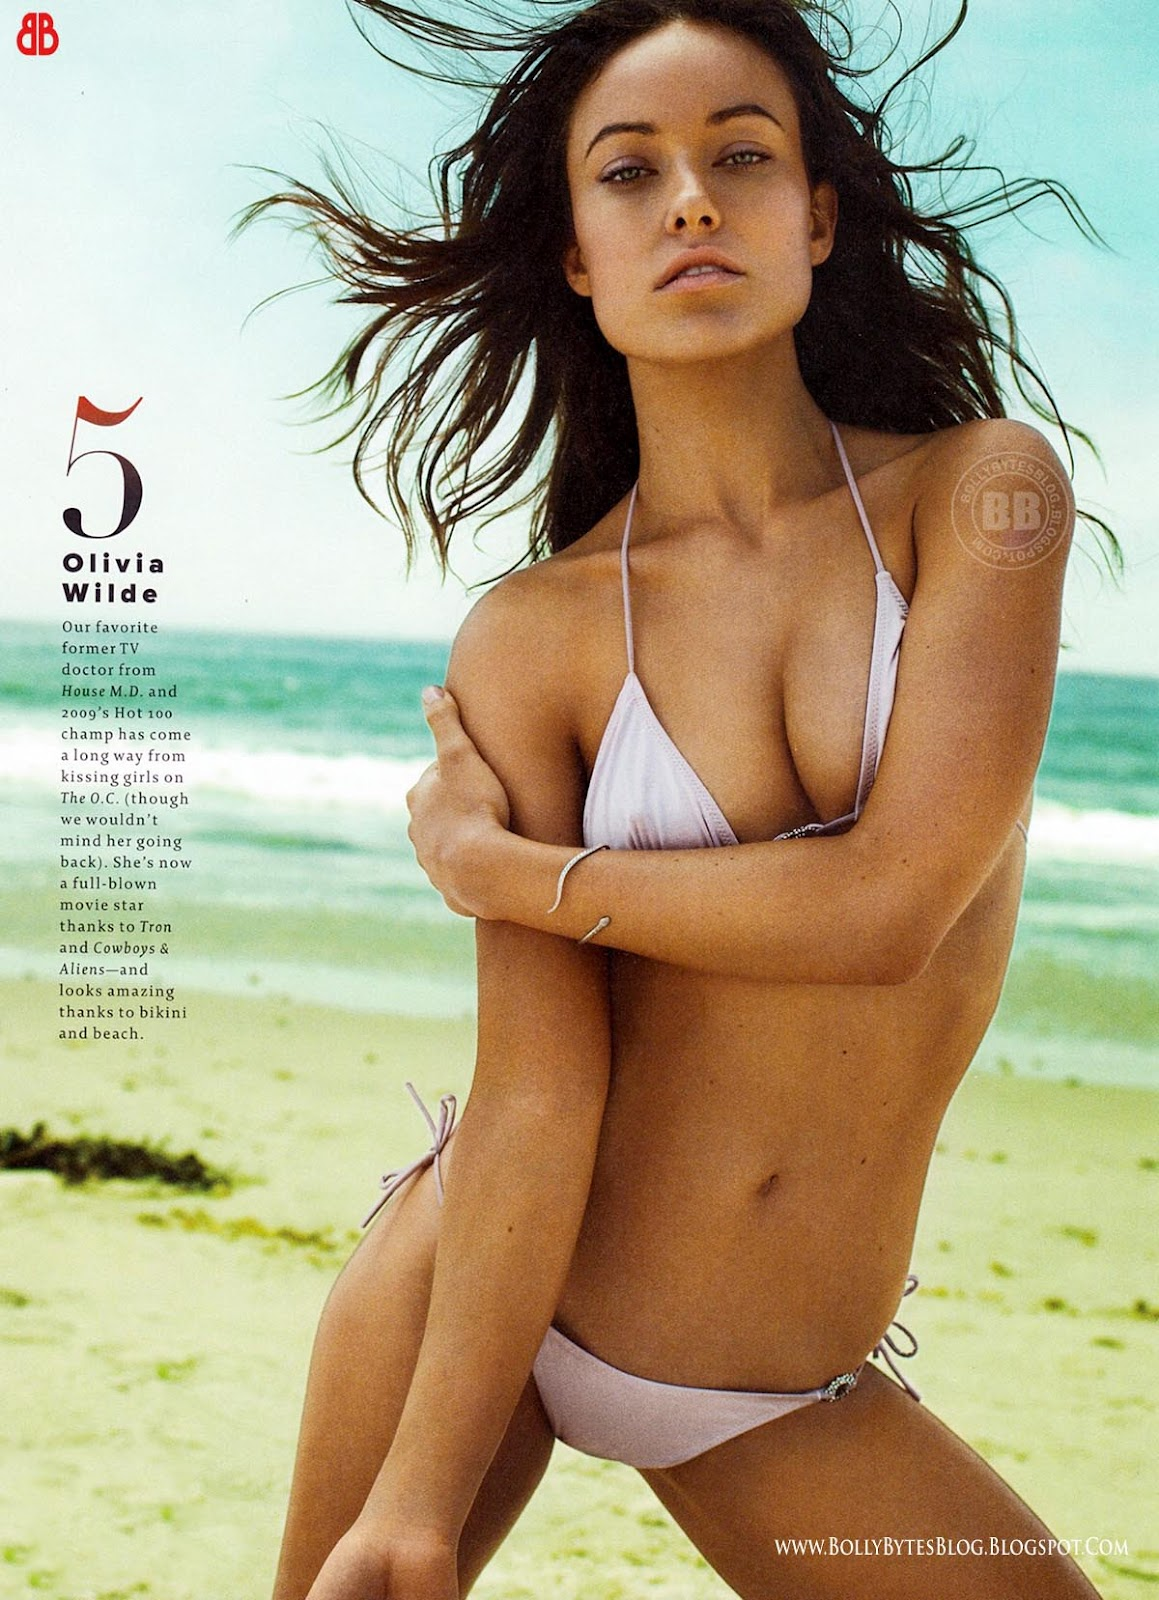 Bollywood Hottest Wallpapers Maxim 39 S 39 Hot 100 39 List 2012